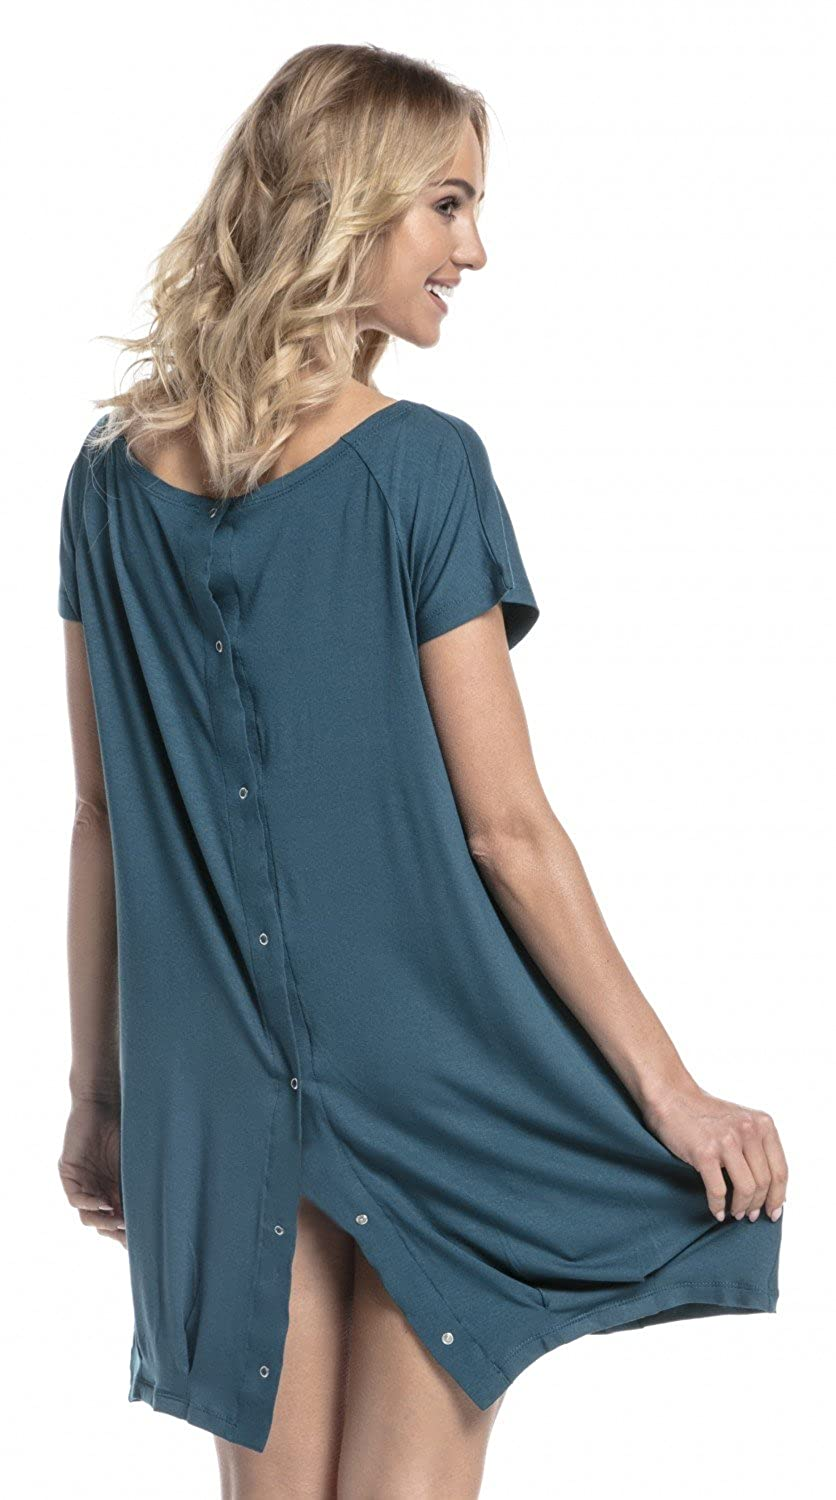 Happy Mama SLEEPWEAR レディース B077D9DW6D US 14/16|グリーン(Bottle Green) グリーン(Bottle Green) US 14/16